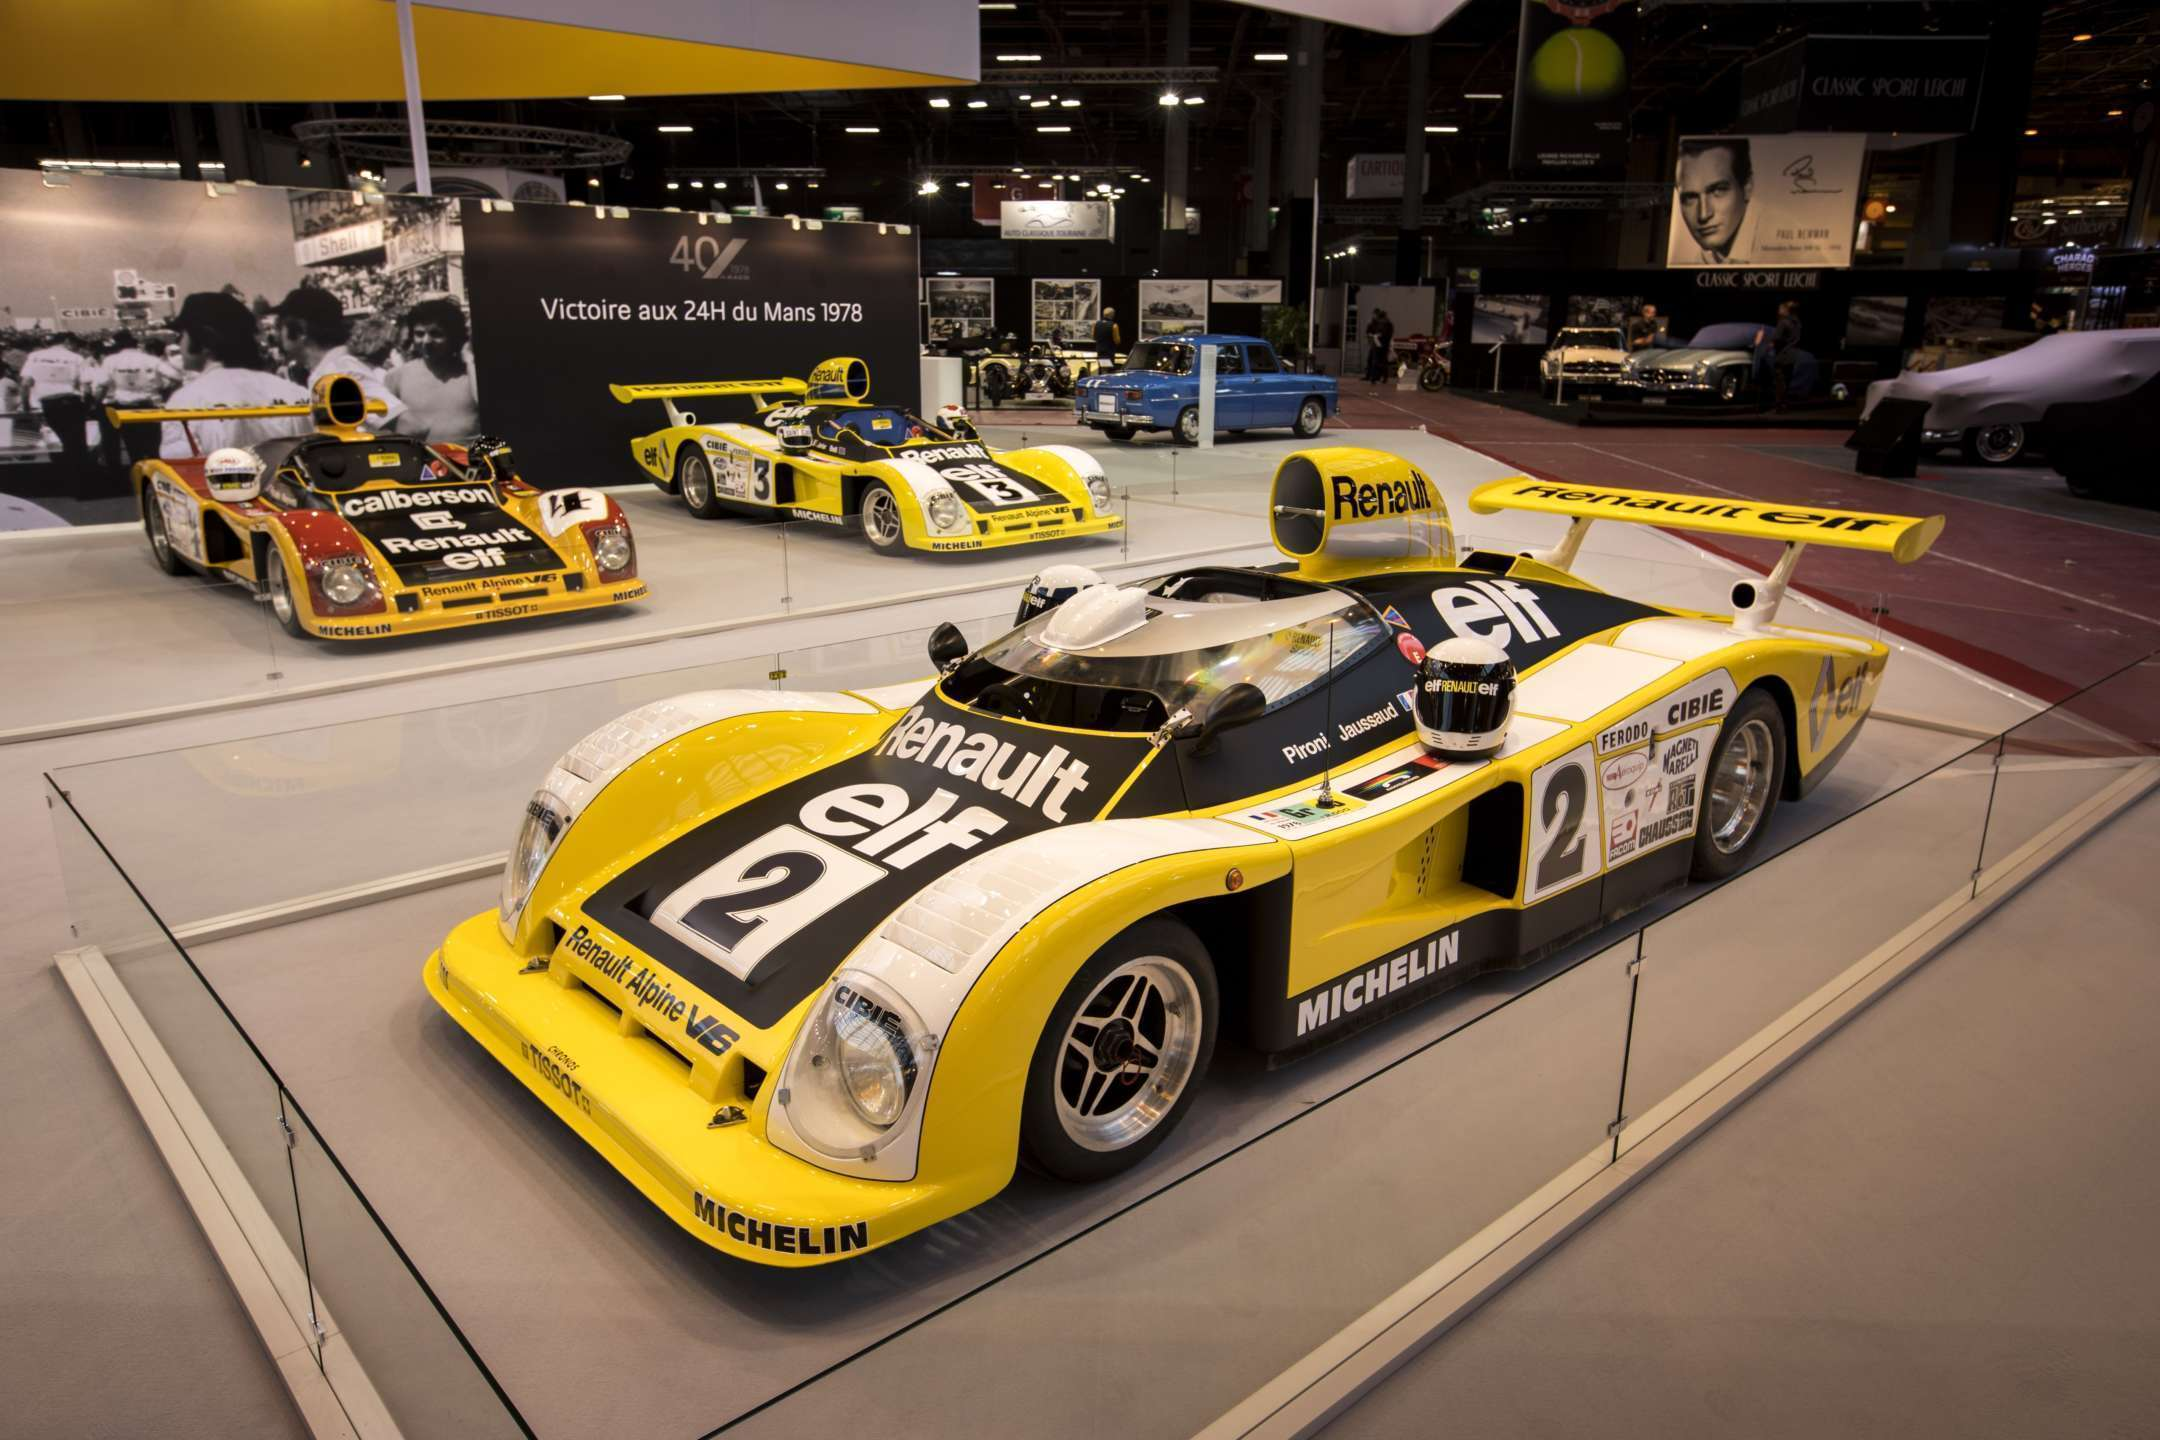 alpine planet retromobile alpine c l bre sa victoire aux 24h du mans 78 retromobile. Black Bedroom Furniture Sets. Home Design Ideas